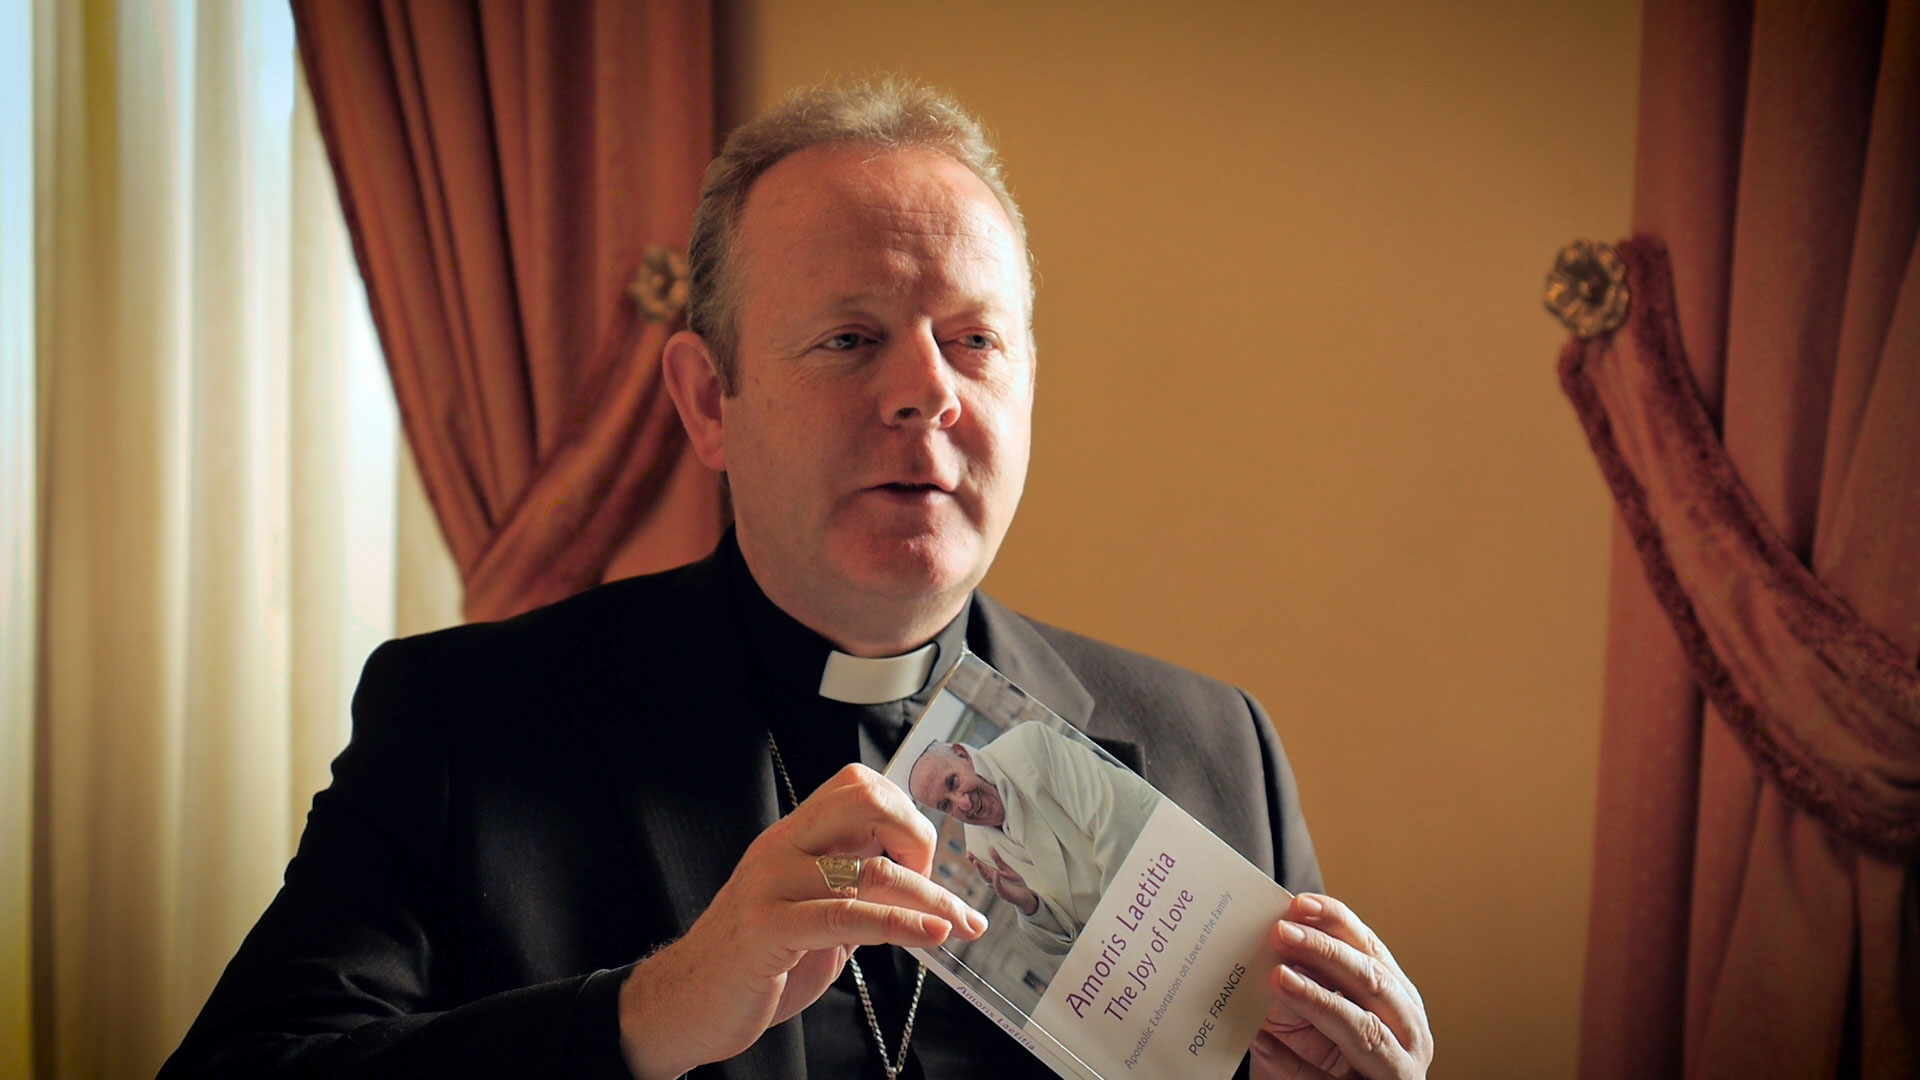 My hopes for WMOF 2018 – Archbishop Eamon Martin